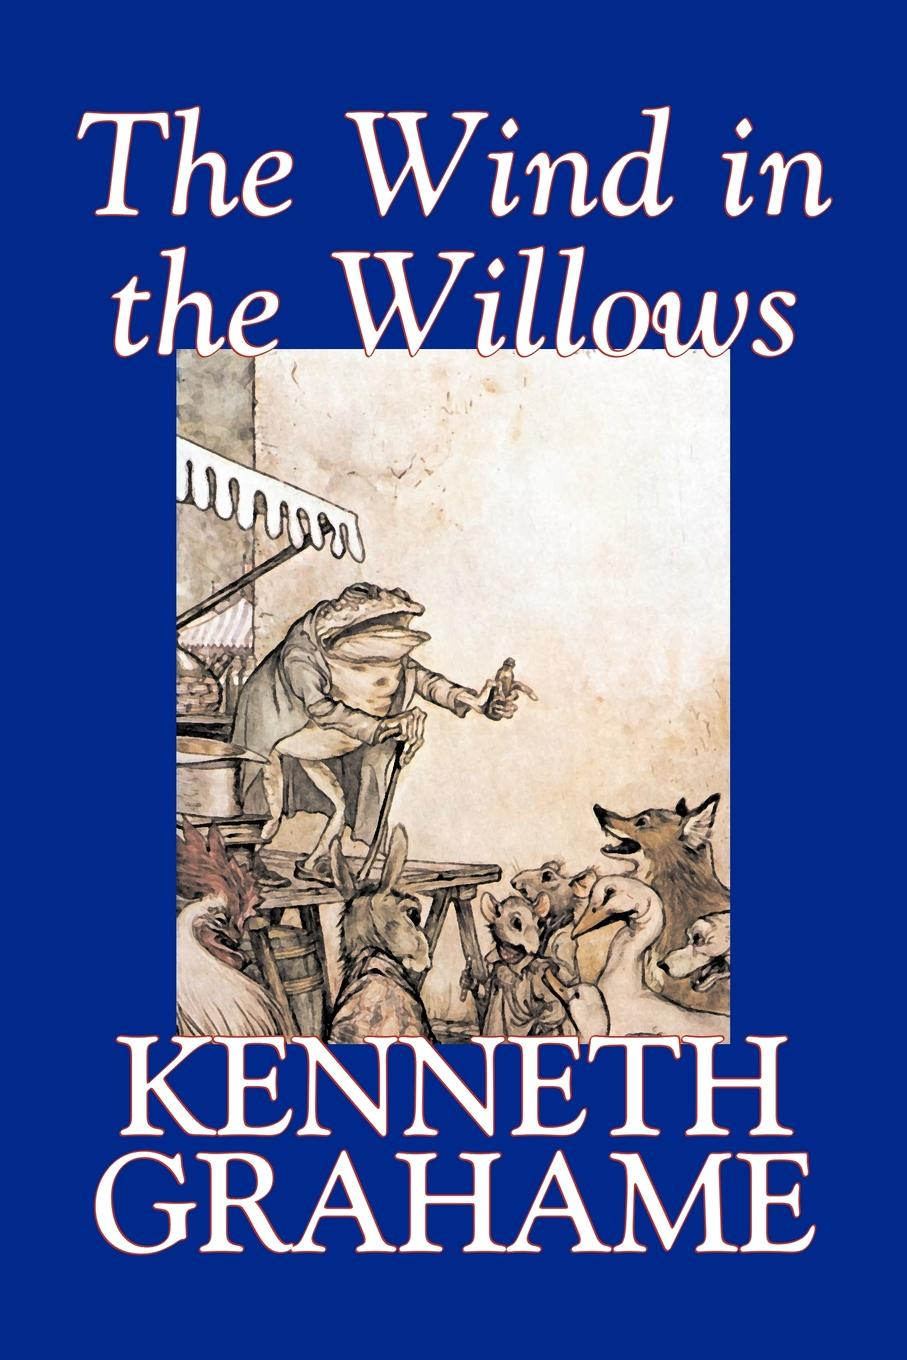 Kenneth Grahame The Wind in the Willows by Kenneth Grahame, Fiction, Animals - Dragons, Unicorns & Mythical wind in the willows